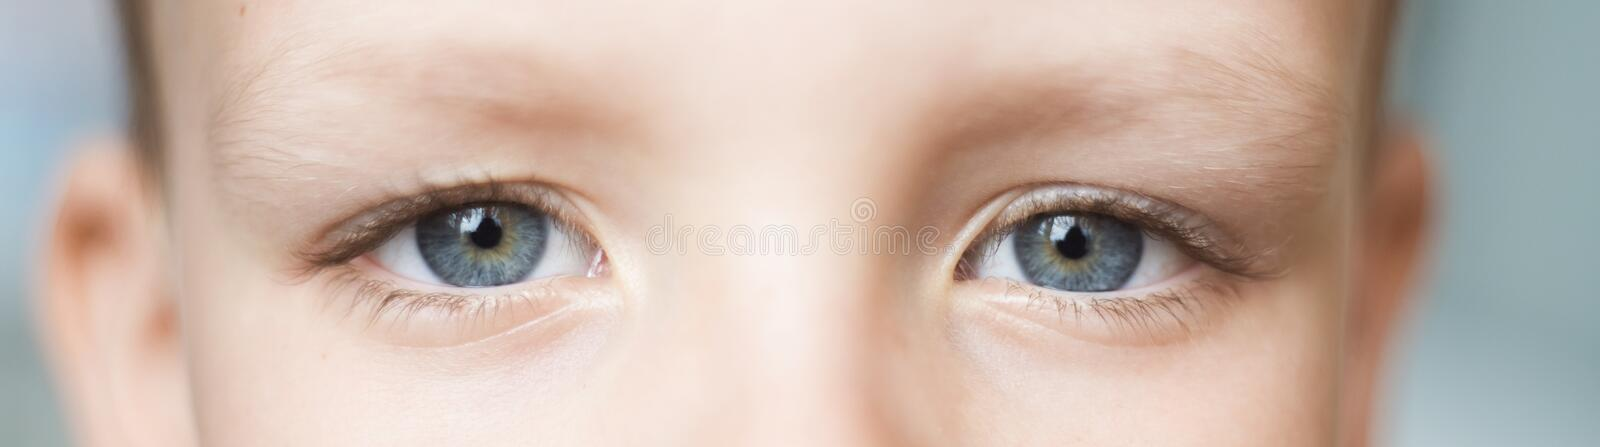 Closeup of beautiful boy eye. Beautiful grey eyes macro shot. image of a little kid eye stock photo